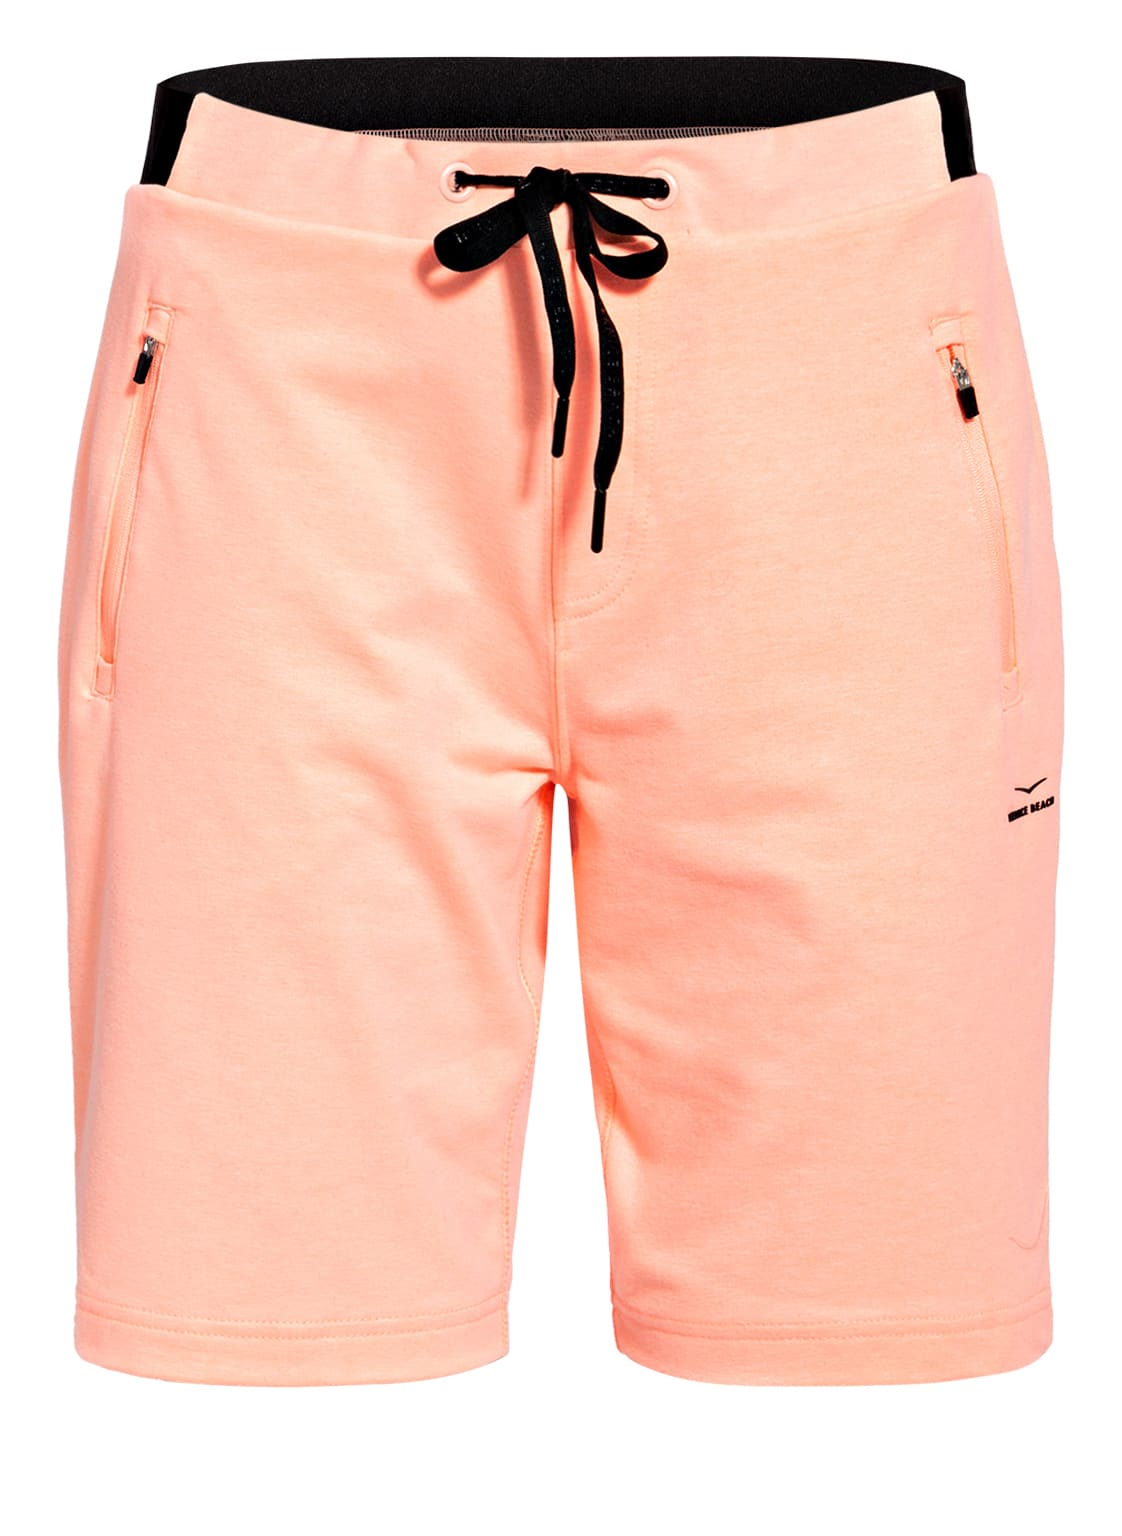 VENICE BEACH Damen Shellini Sweatshorts